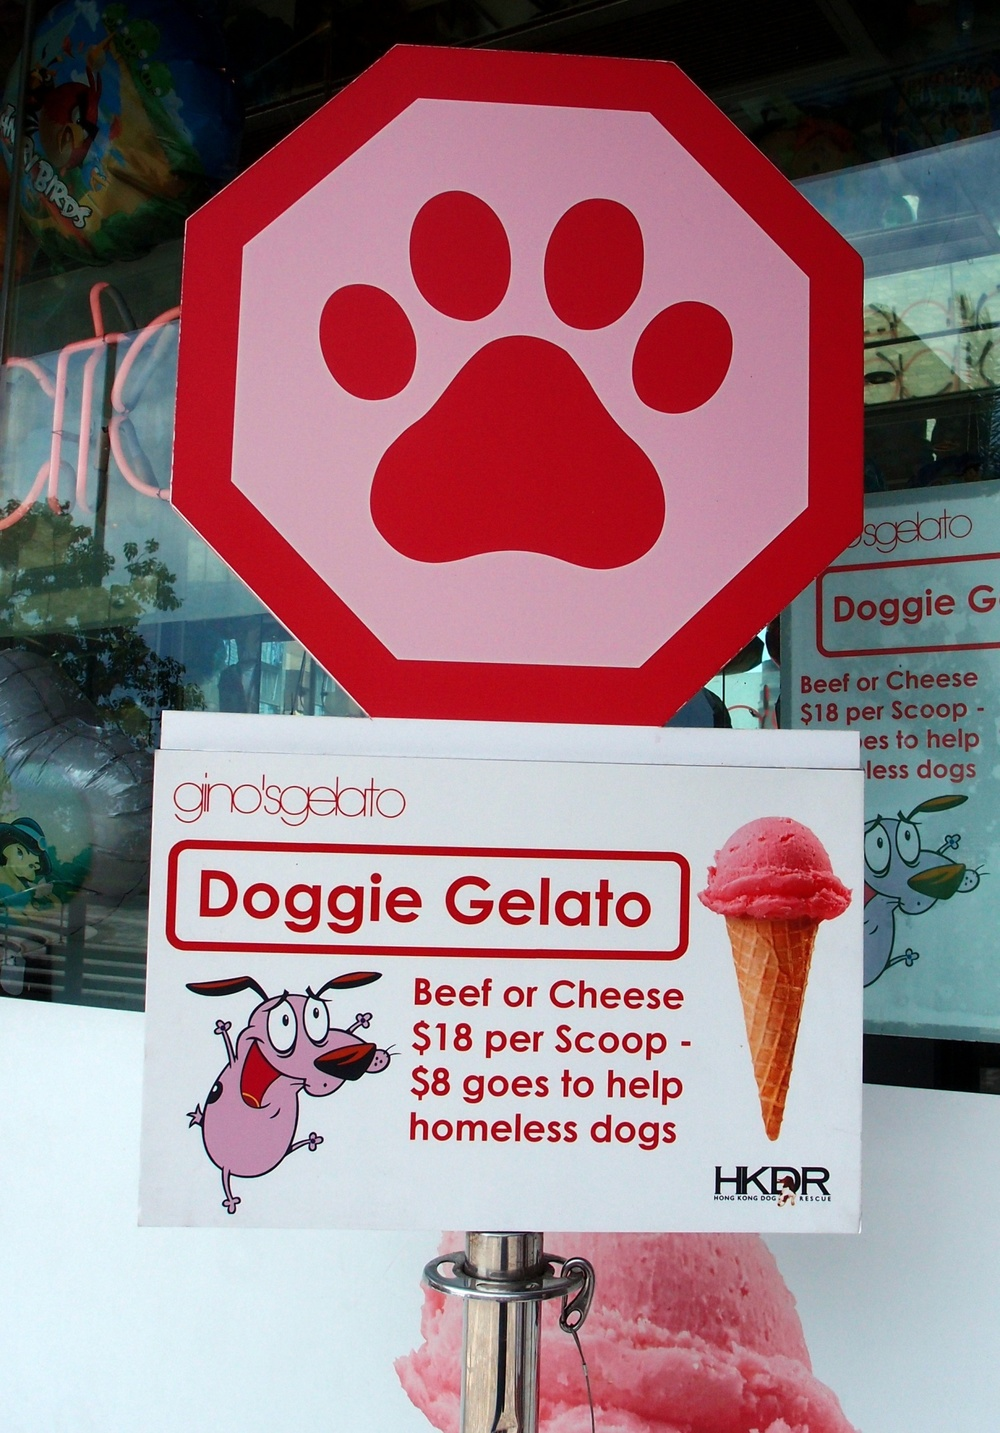 Ice cream for dogs, whatever next.